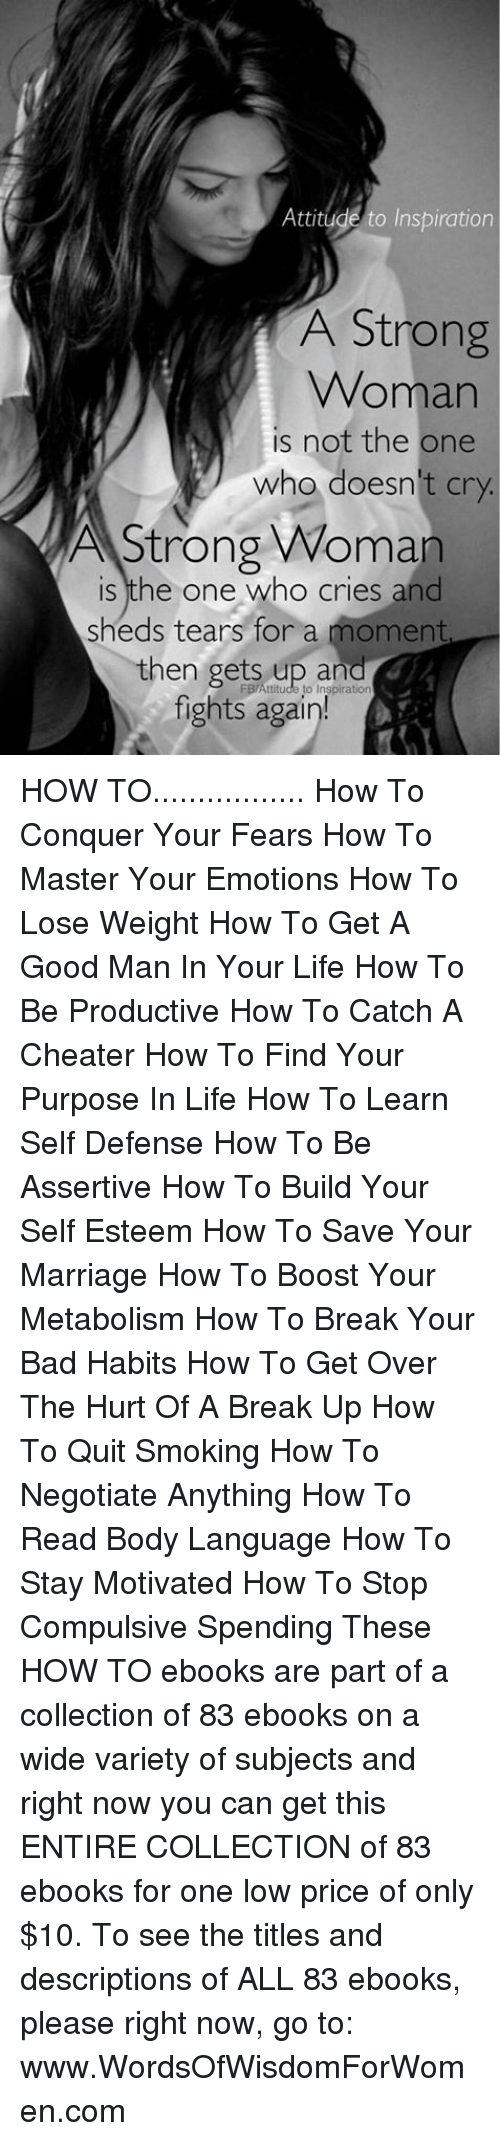 how to lose weight: Attitude to Inspiration  A Strong  Woman  is not the one  who doesn't cry  A Strong Woman  is the one who cries and  sheds tears for a moment  then gets up and  FB Attitude to Inspiration  fights again! HOW TO................. How To Conquer Your Fears How To Master Your Emotions How To Lose Weight How To Get A Good Man In Your Life  How To Be Productive  How To Catch A Cheater  How To Find Your Purpose In Life  How To Learn Self Defense How To Be Assertive   How To Build Your Self Esteem   How To Save Your Marriage  How To Boost Your Metabolism  How To Break Your Bad Habits   How To Get Over The Hurt Of A Break Up  How To Quit Smoking  How To Negotiate Anything  How To Read Body Language   How To Stay Motivated  How To Stop Compulsive Spending    These HOW TO ebooks are part of a collection of 83 ebooks on a wide variety of subjects and right now you can get this ENTIRE COLLECTION of 83 ebooks for one low price of only $10. To see the titles and descriptions of ALL 83 ebooks, please right now, go to: www.WordsOfWisdomForWomen.com